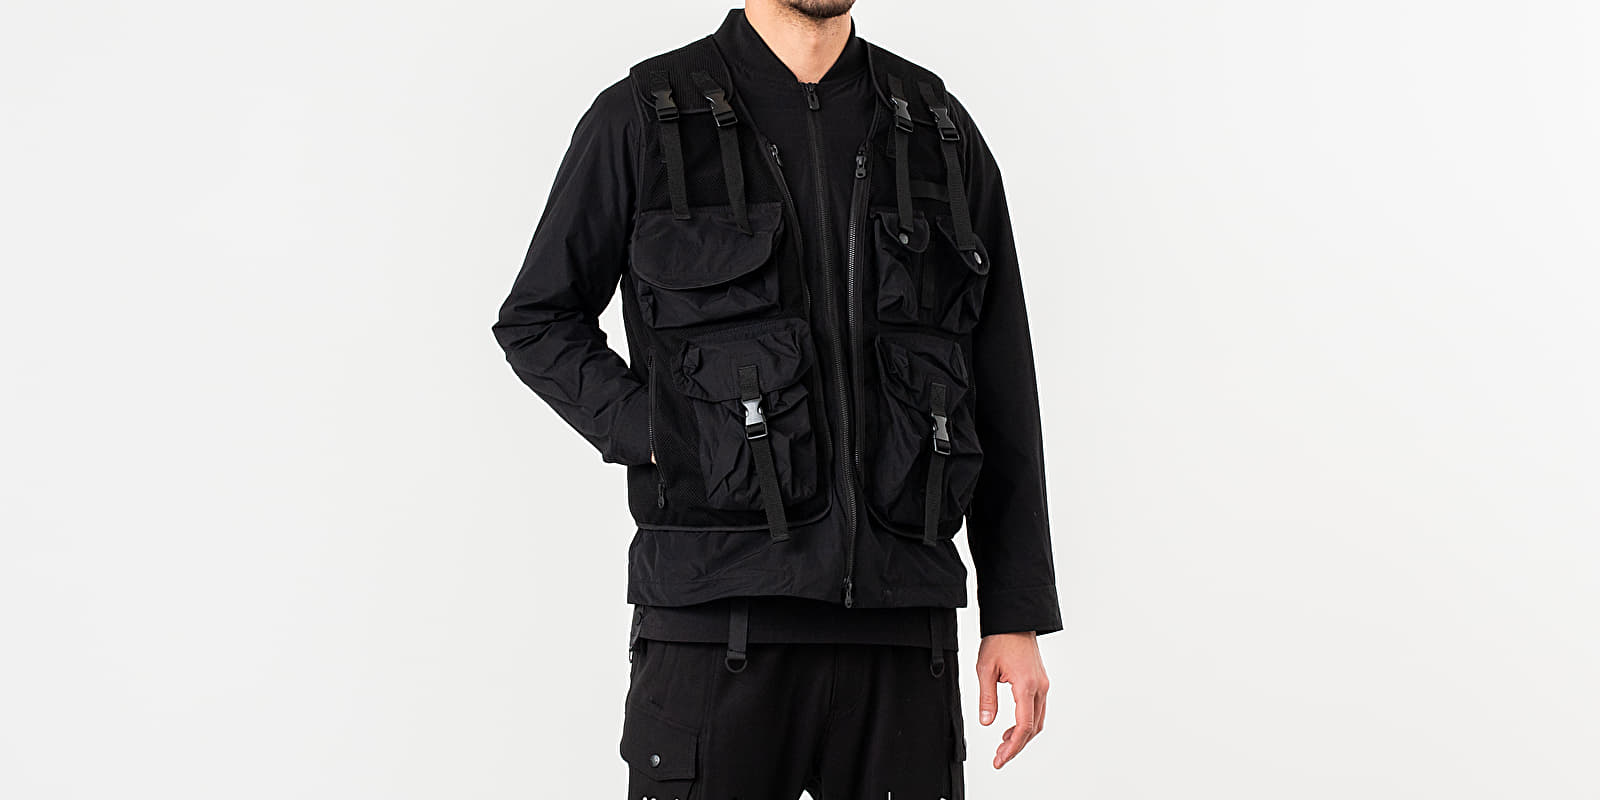 White Mountaineering Military Blouson Jacket Black